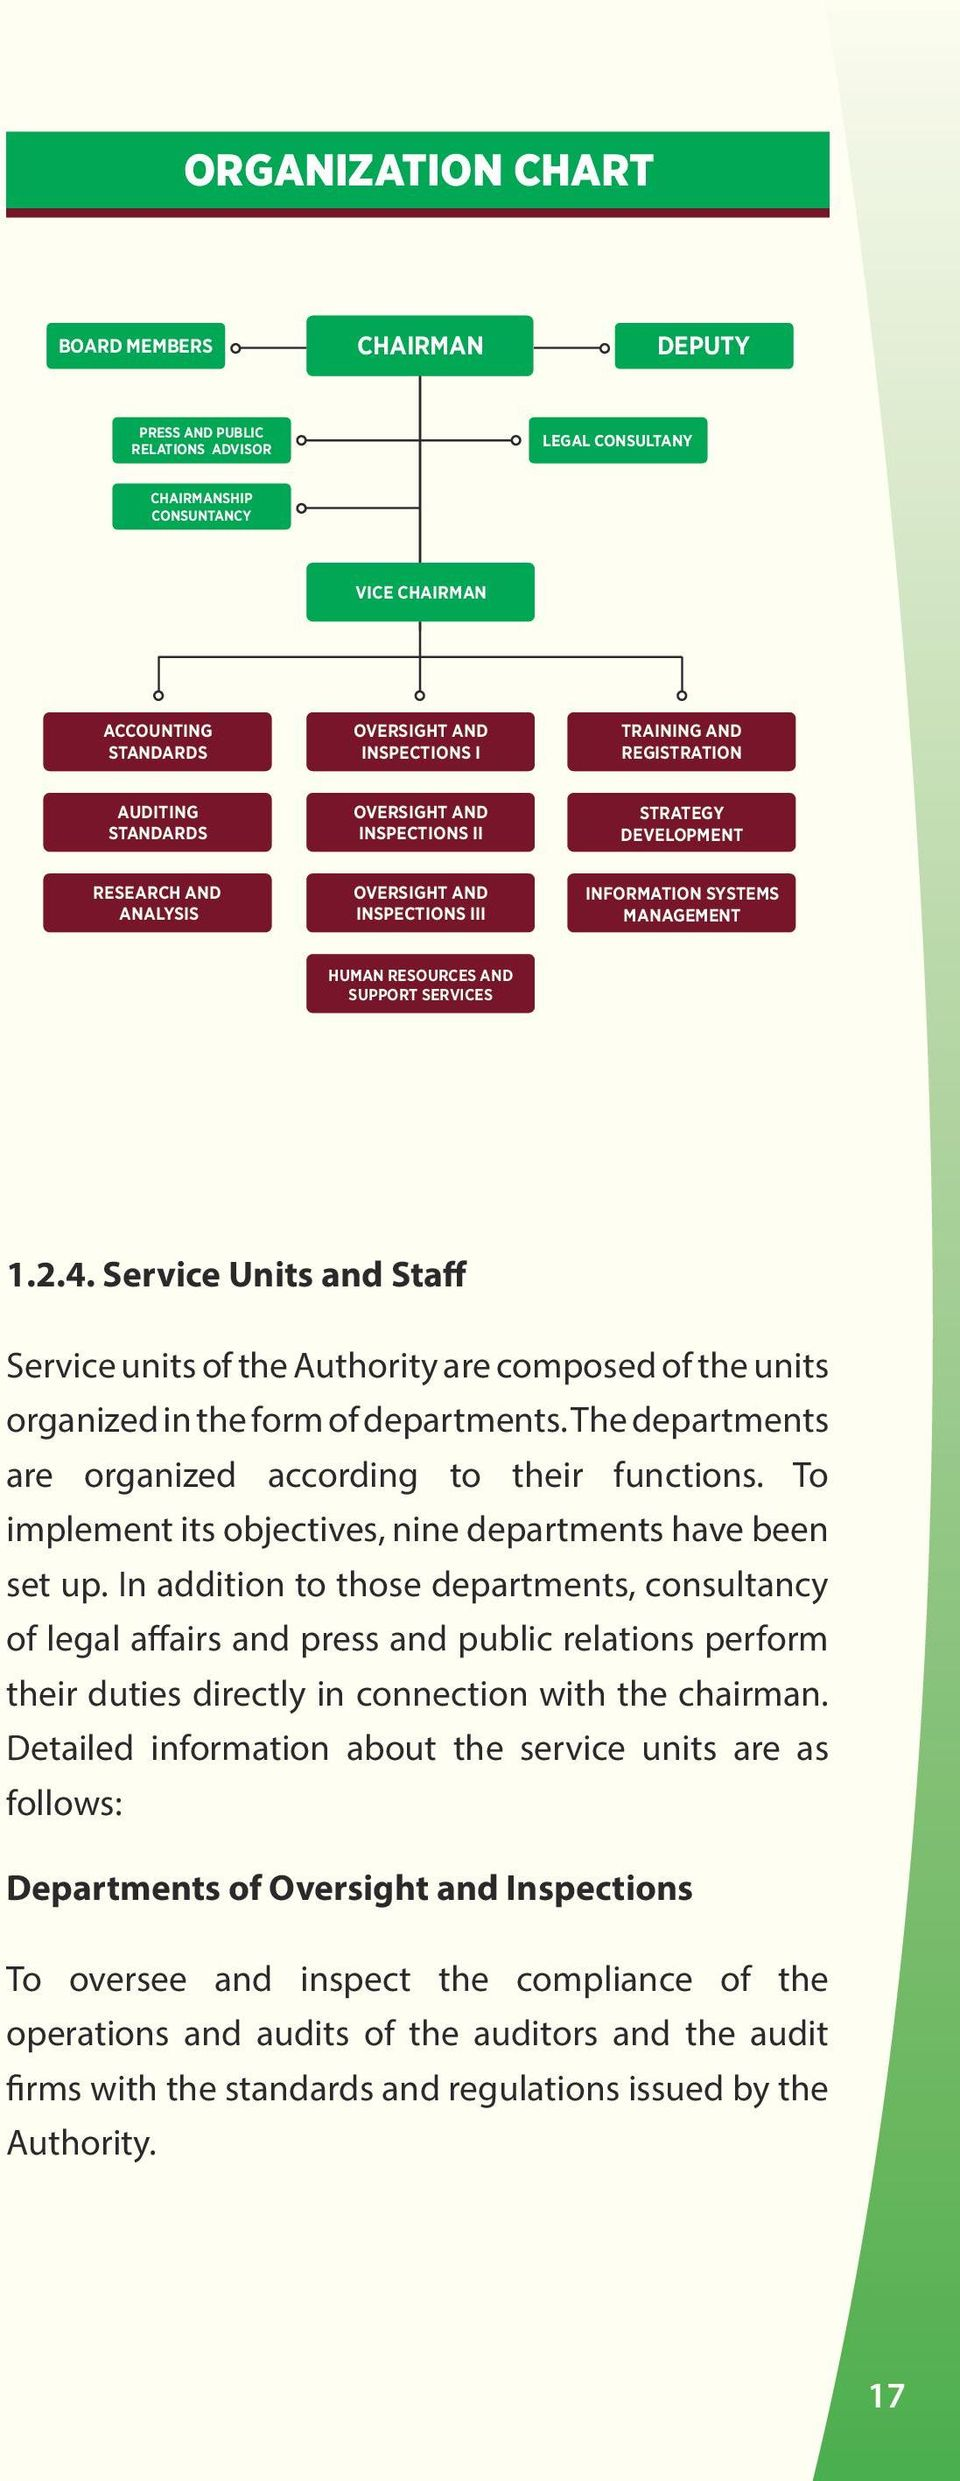 SERVICES 1.2.4. Service Units and Staff Service units of the Authority are composed of the units organized in the form of departments. The departments are organized according to their functions.